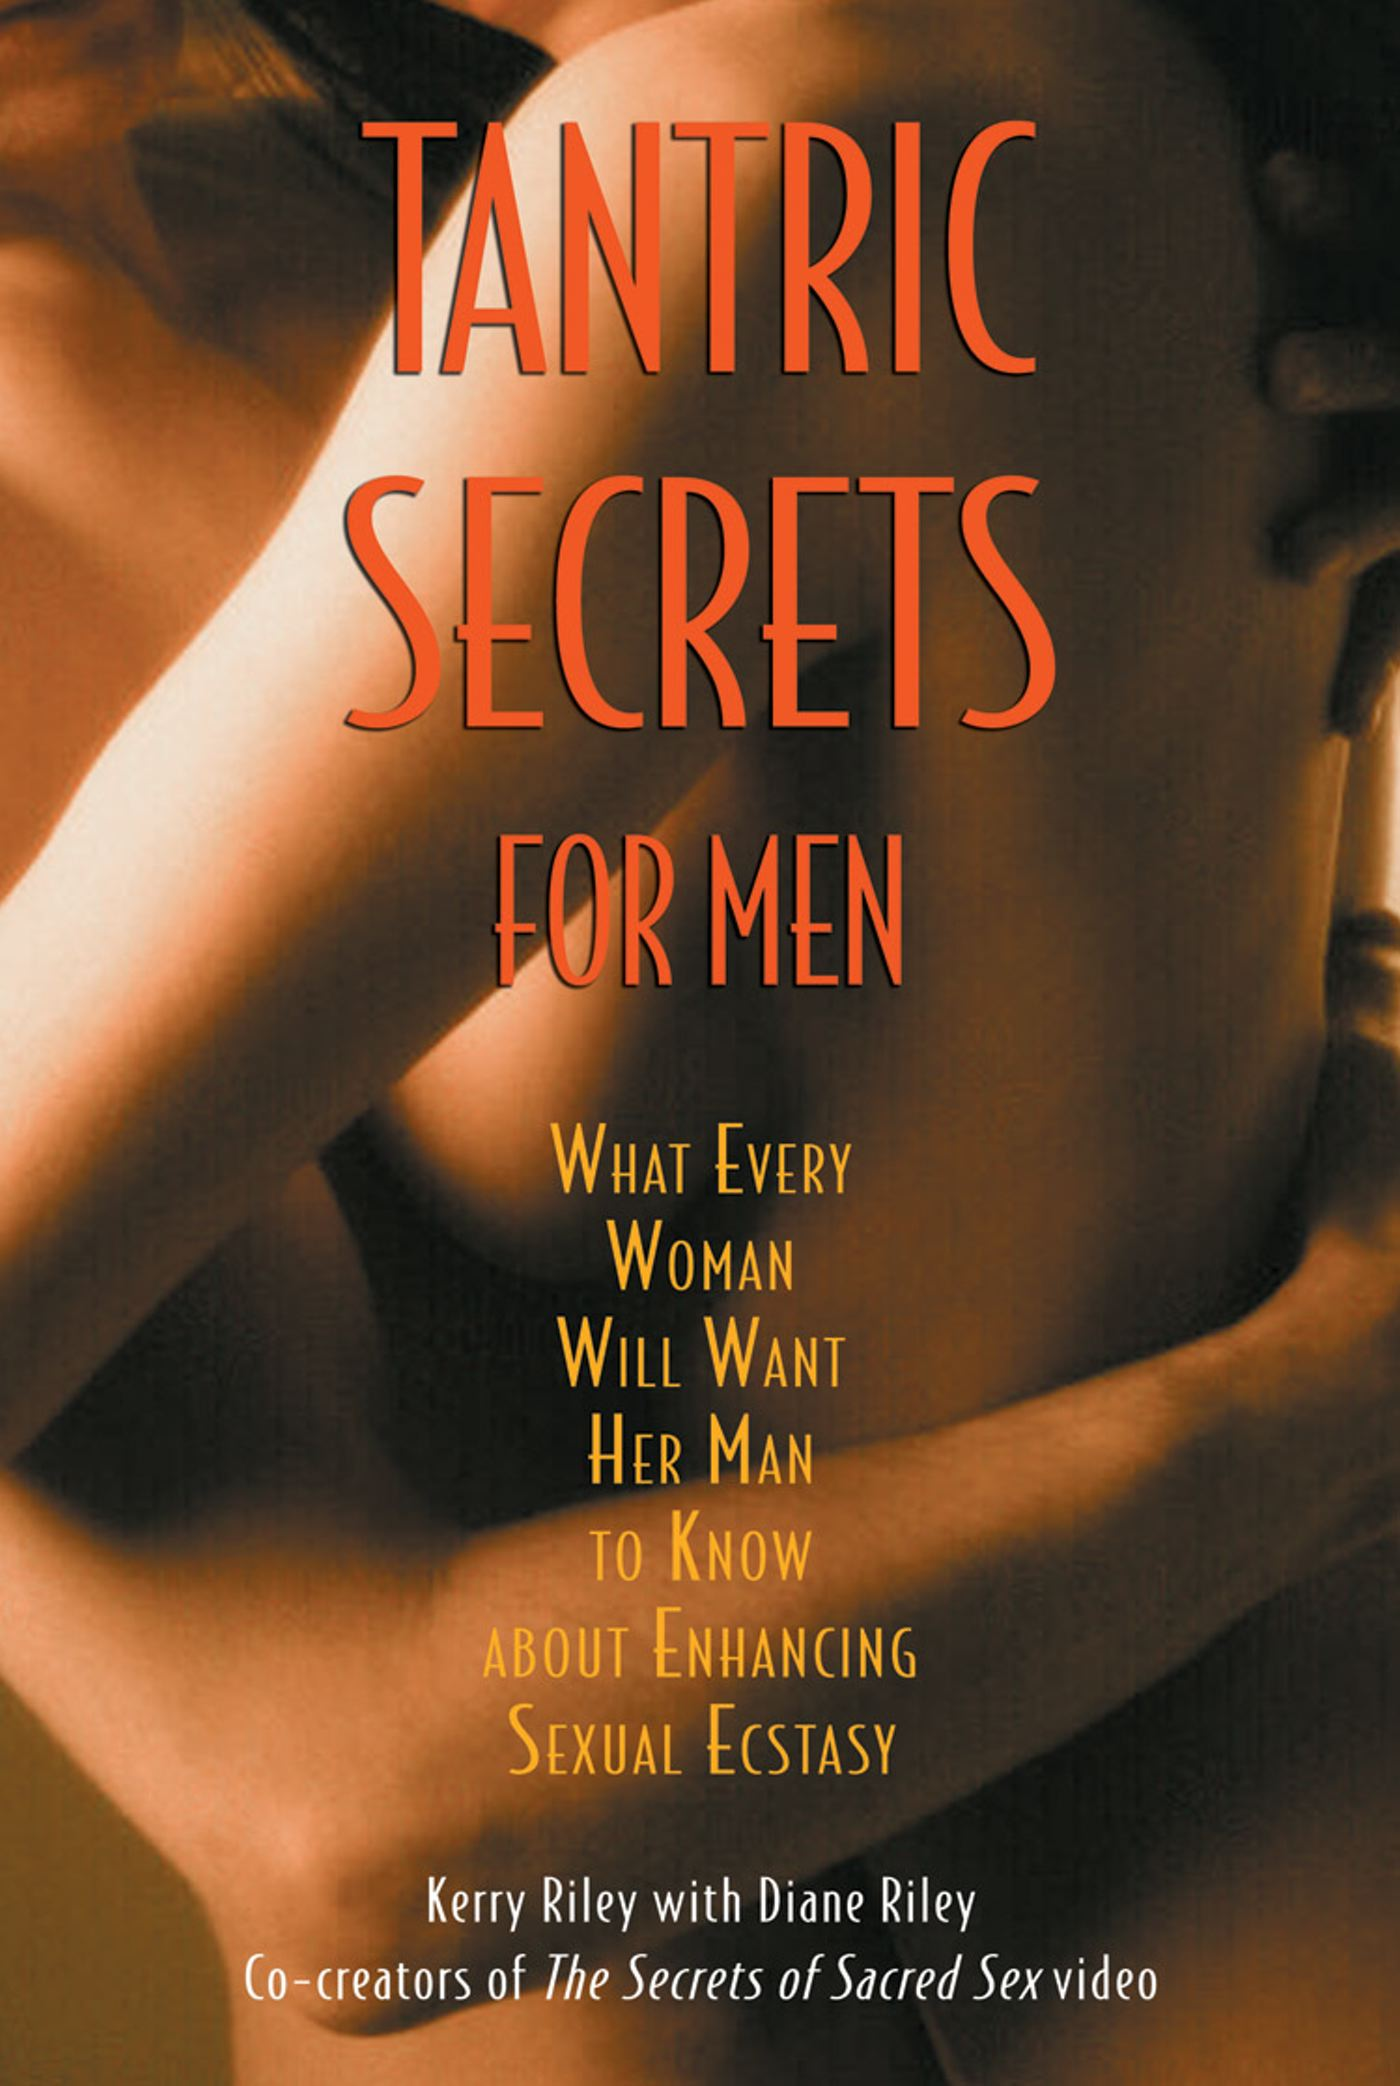 What men want women to know about sex